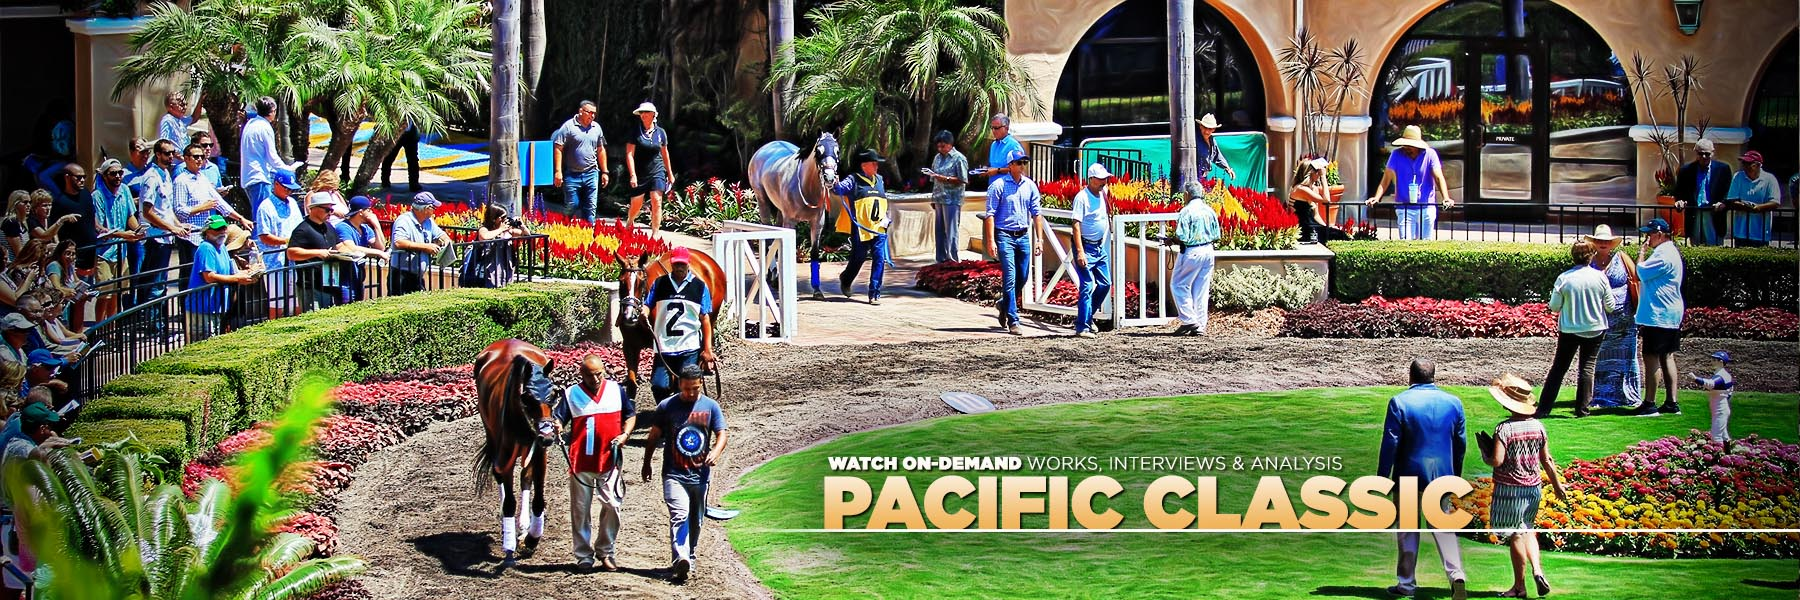 Jeff Siegel's Blog: Del Mar Analysis & Wagering Strategies for Saturday, August 21, 2021